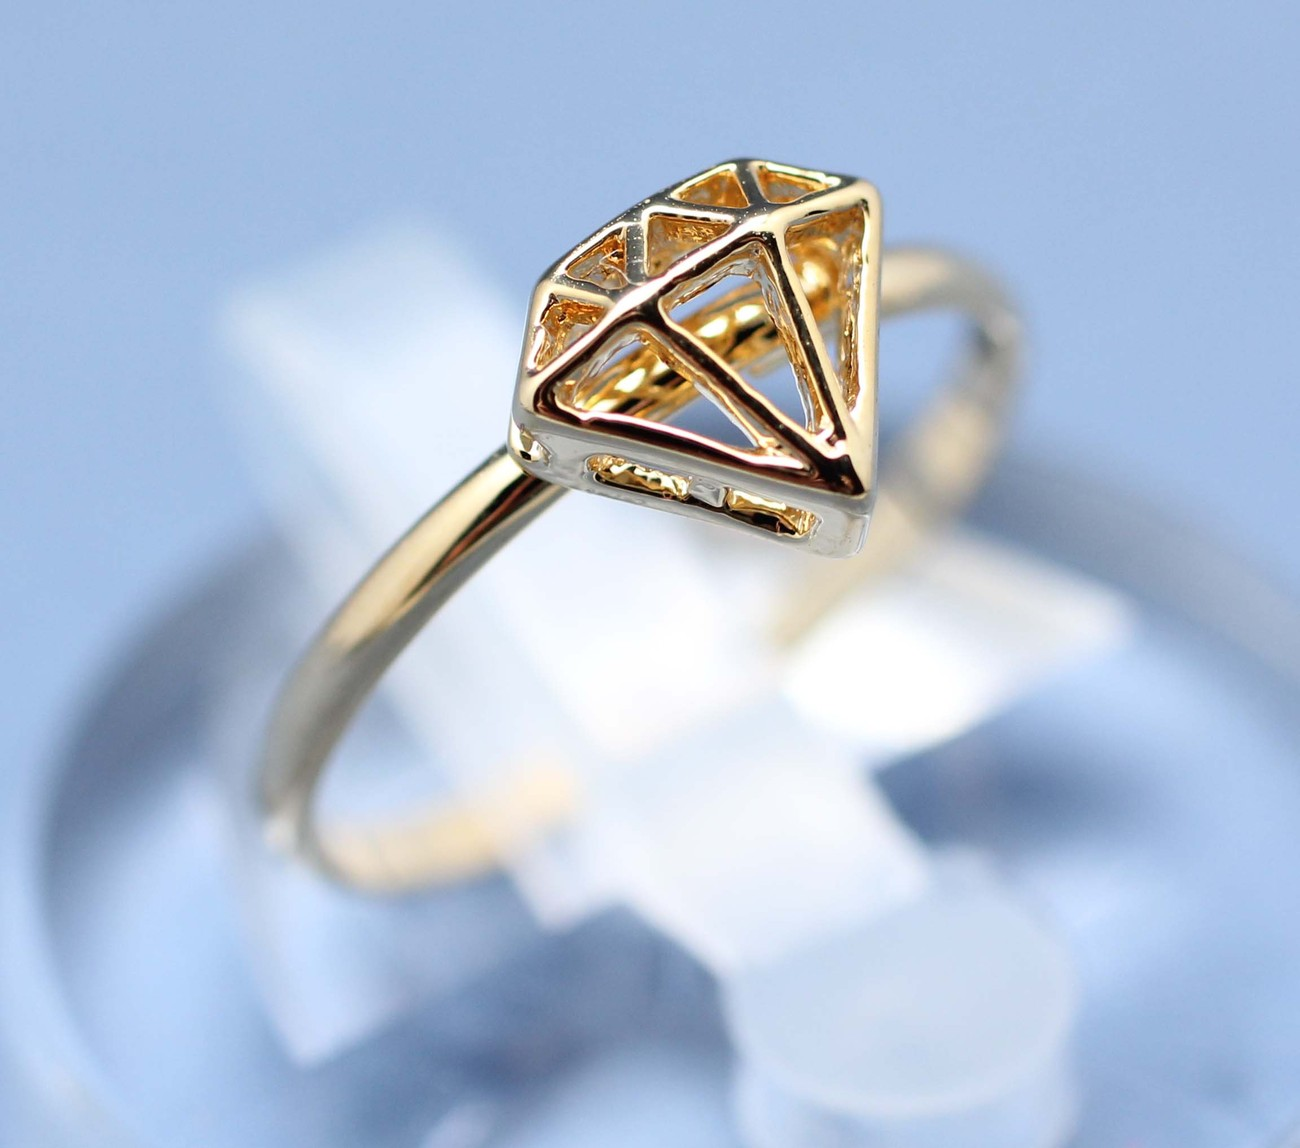 Diamond Shape Cutout adjustable ring in gold - Rings